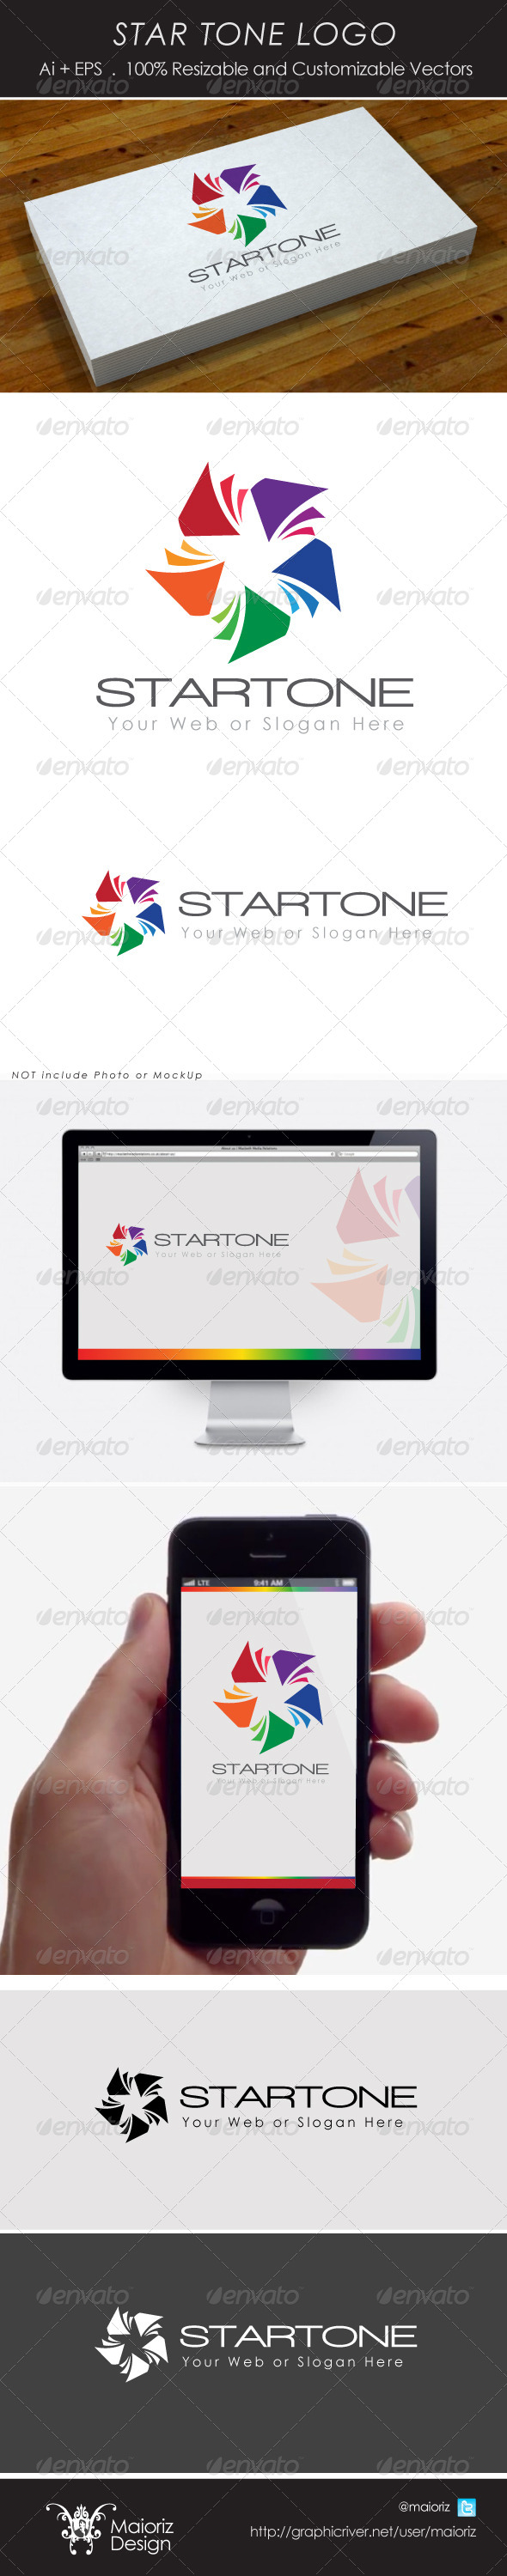 GraphicRiver Star Tone Logotype 4321836